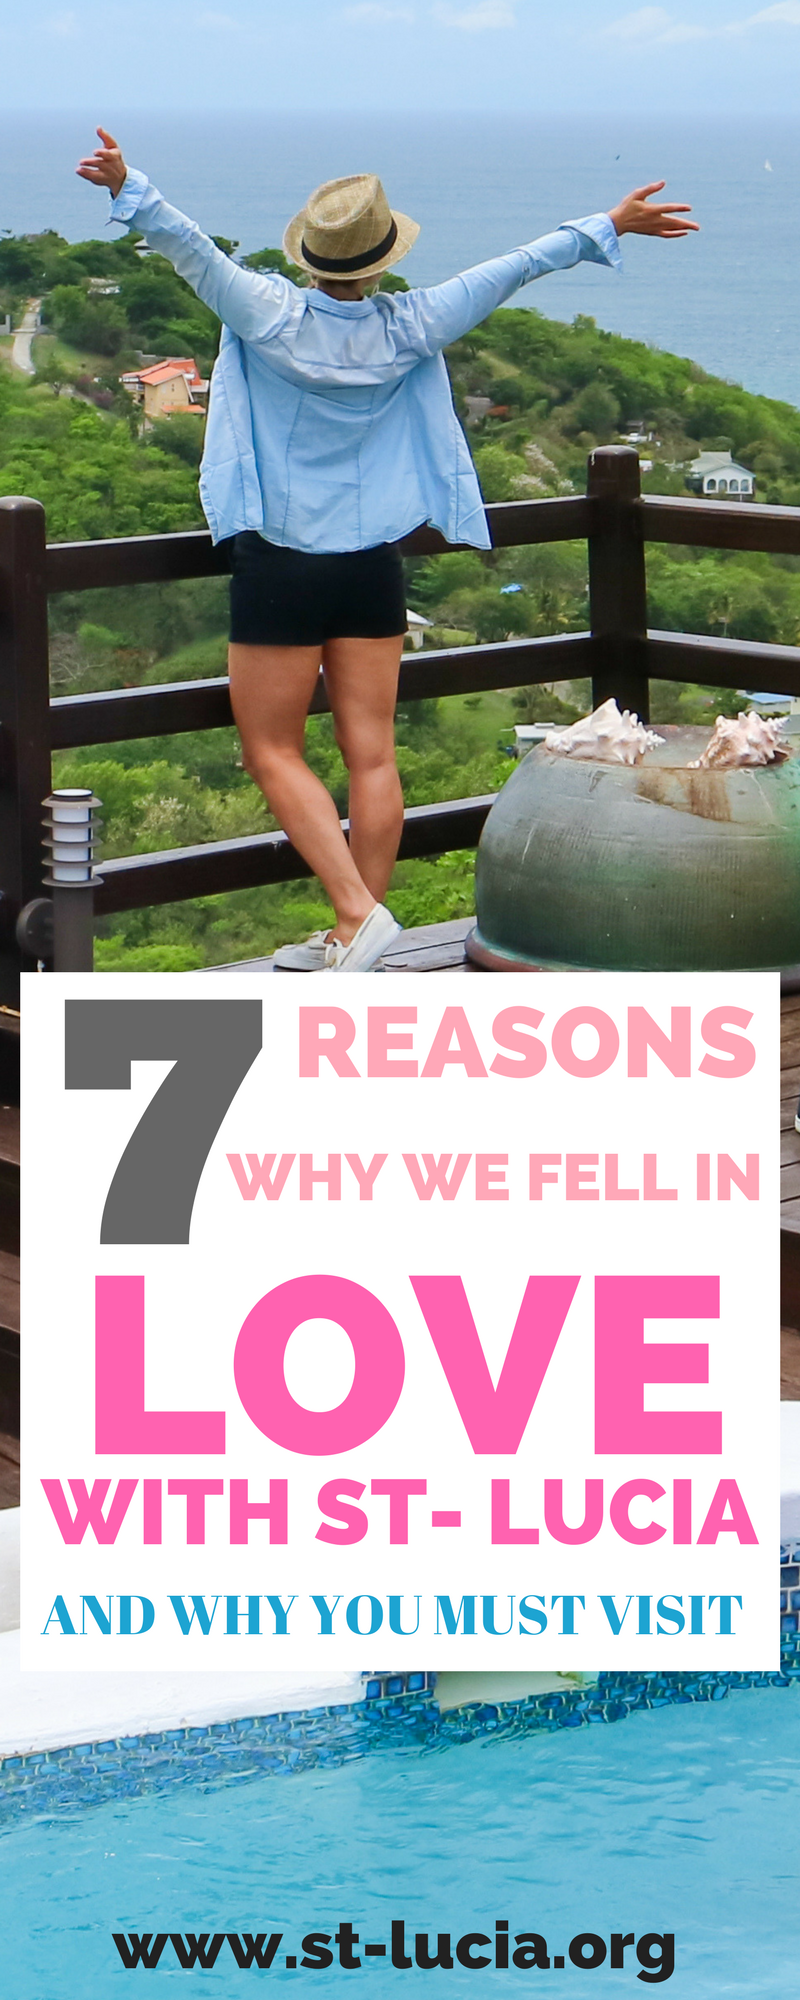 7 Reasons why why we fell in love with st lucia